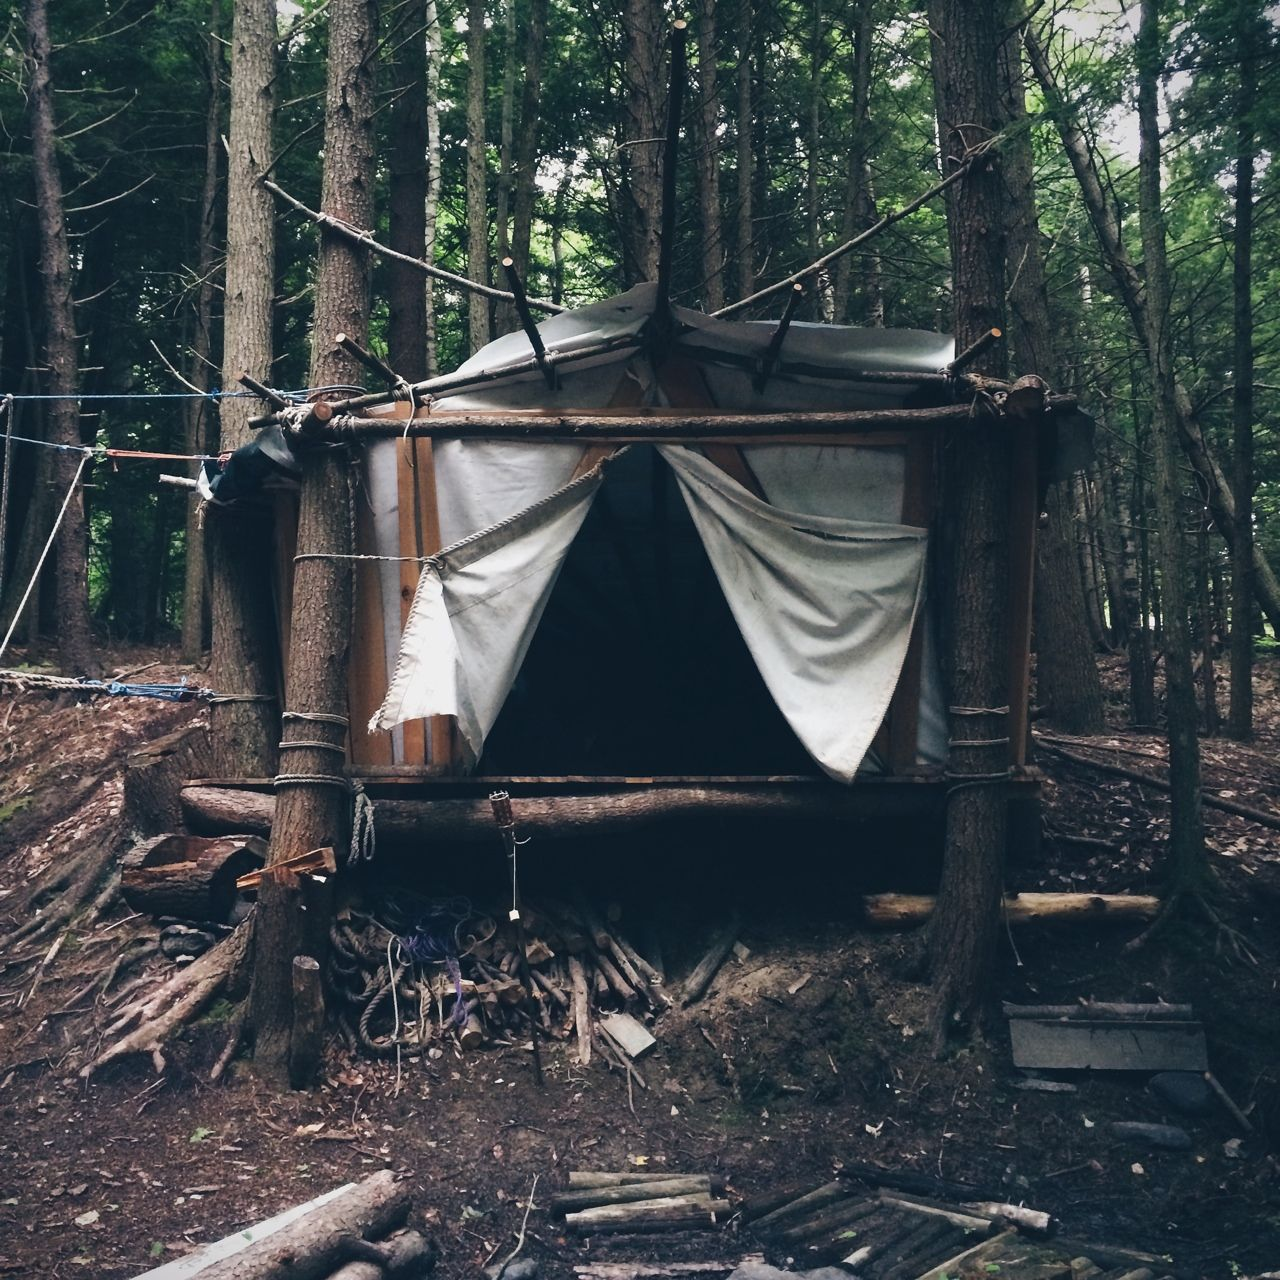 Hipster Apartments Photo Interior Tent Camping